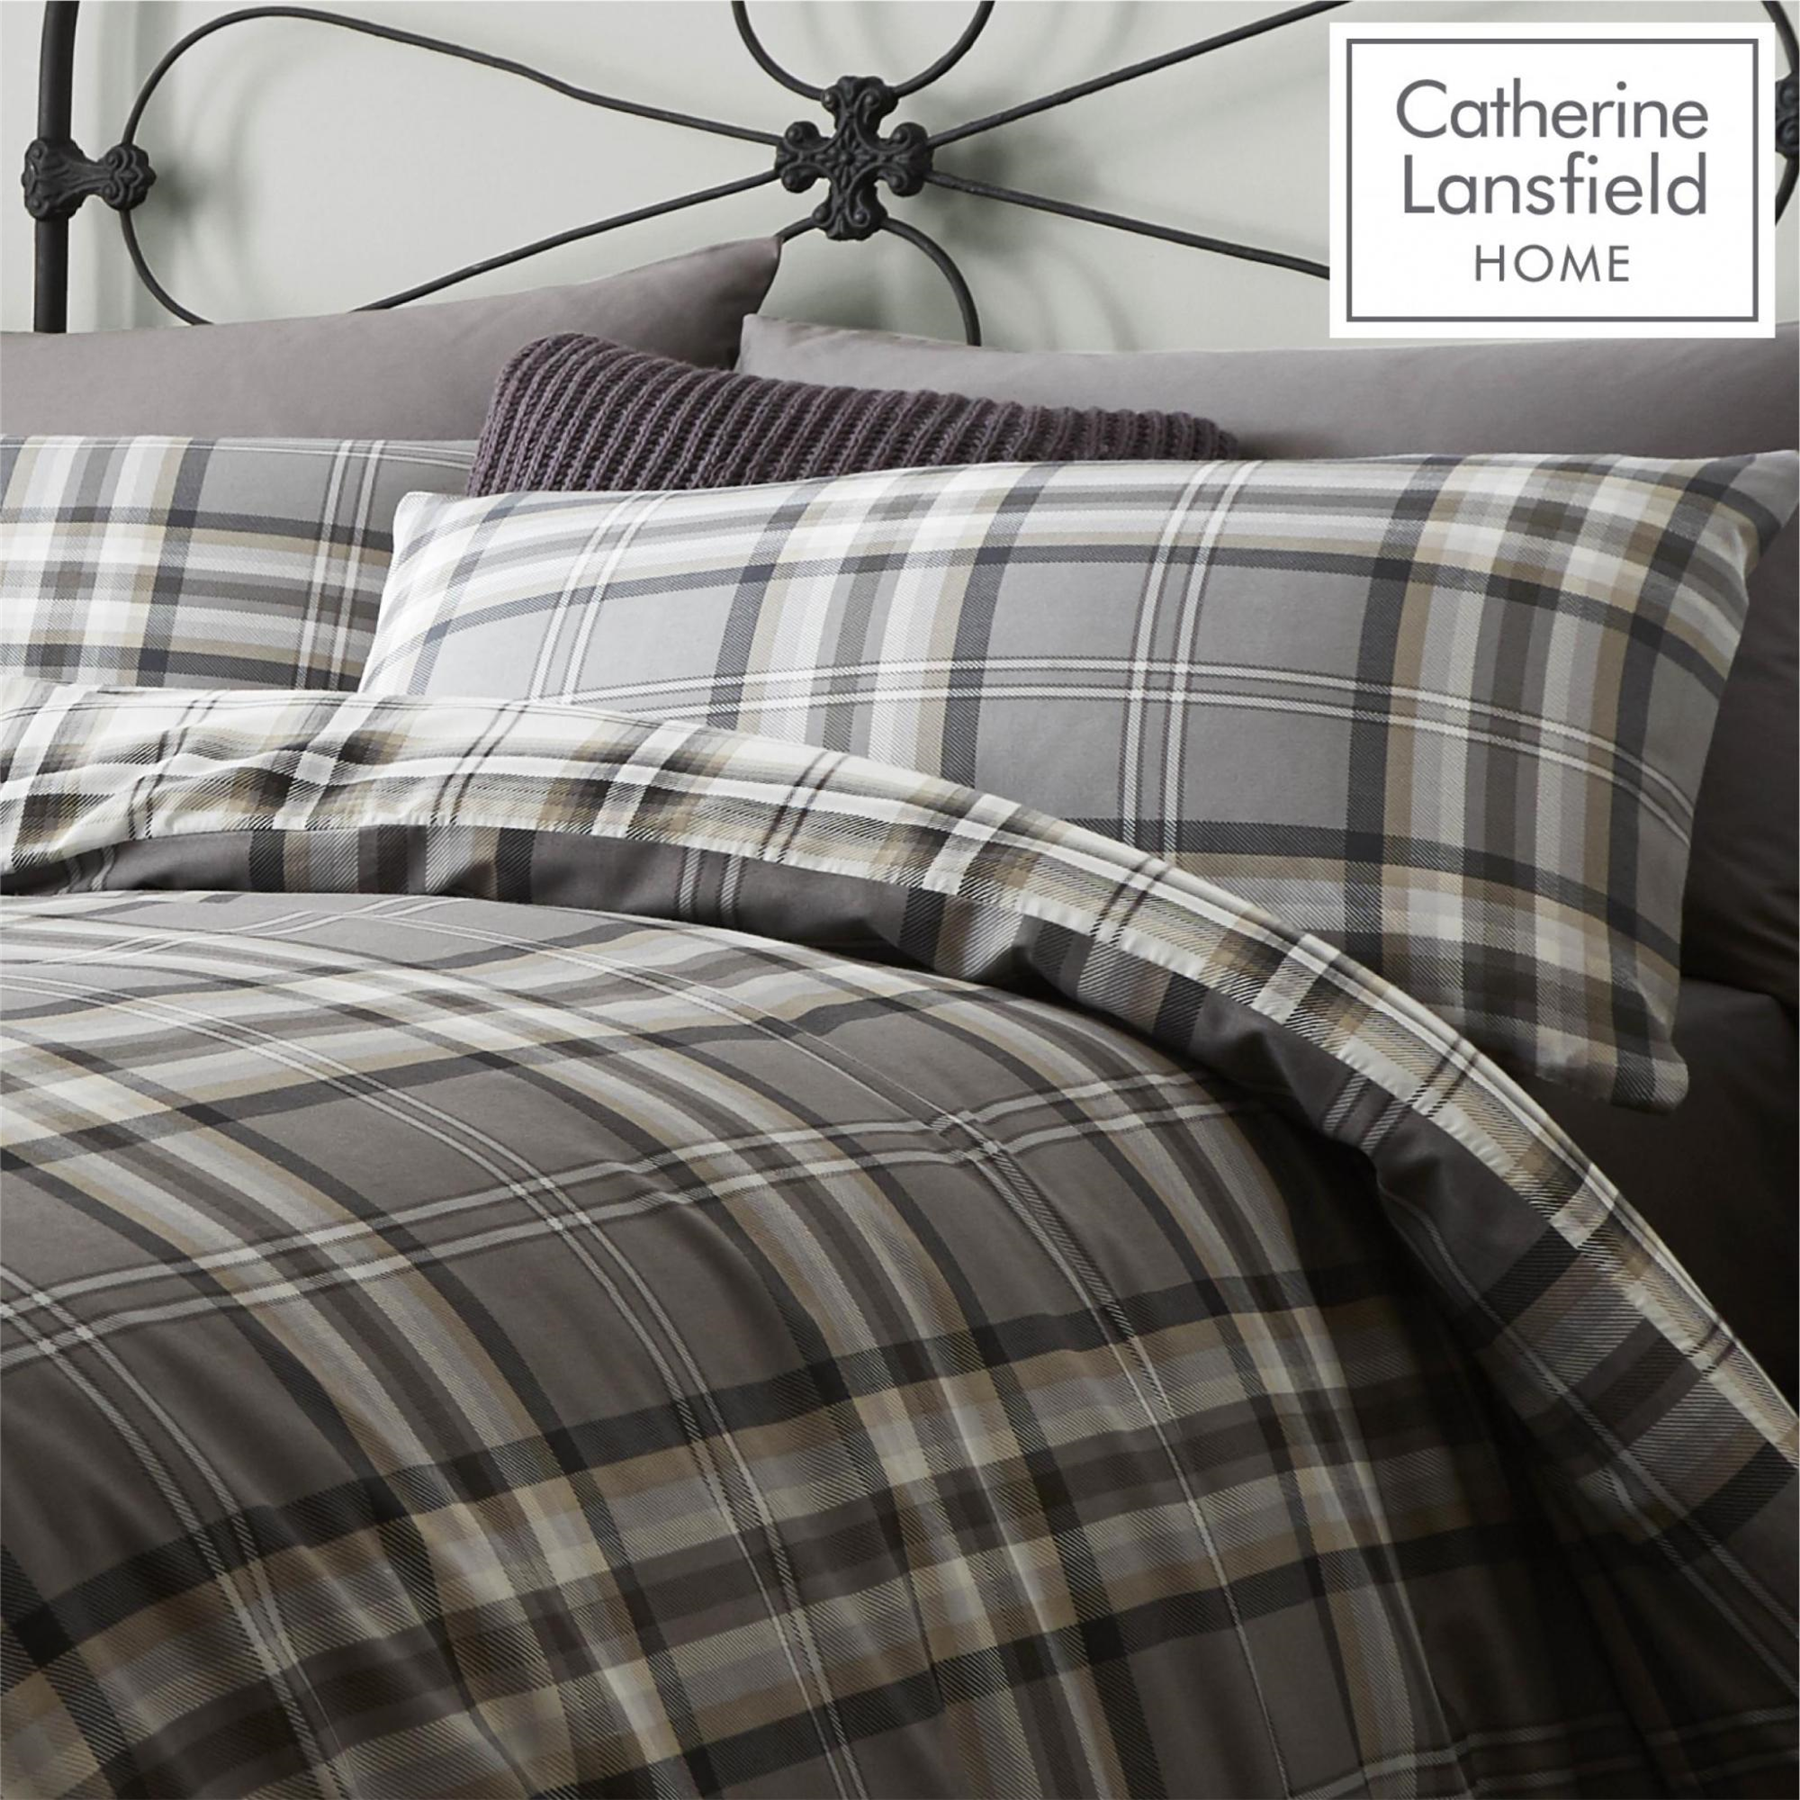 Catherine-Lansfield-Duvet-Set-Reversible-Check-Bedding-Charcoal-Pillows-Curtain thumbnail 11